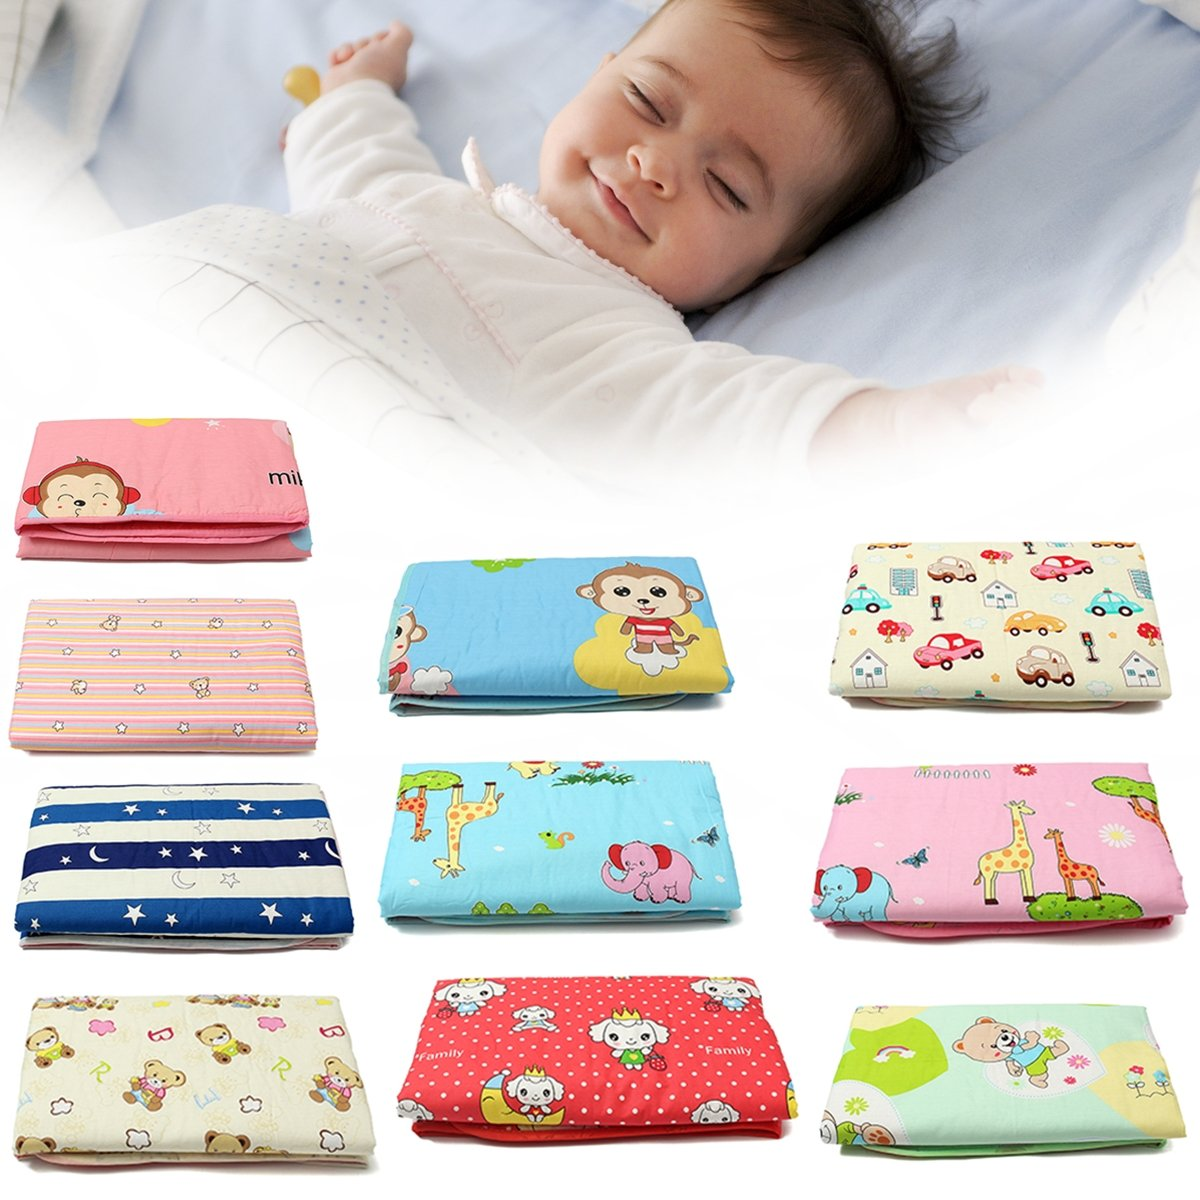 Baby Diaper Changing Pad Kid Nappy Urine Mat For Children Infant Adult 120x150cm